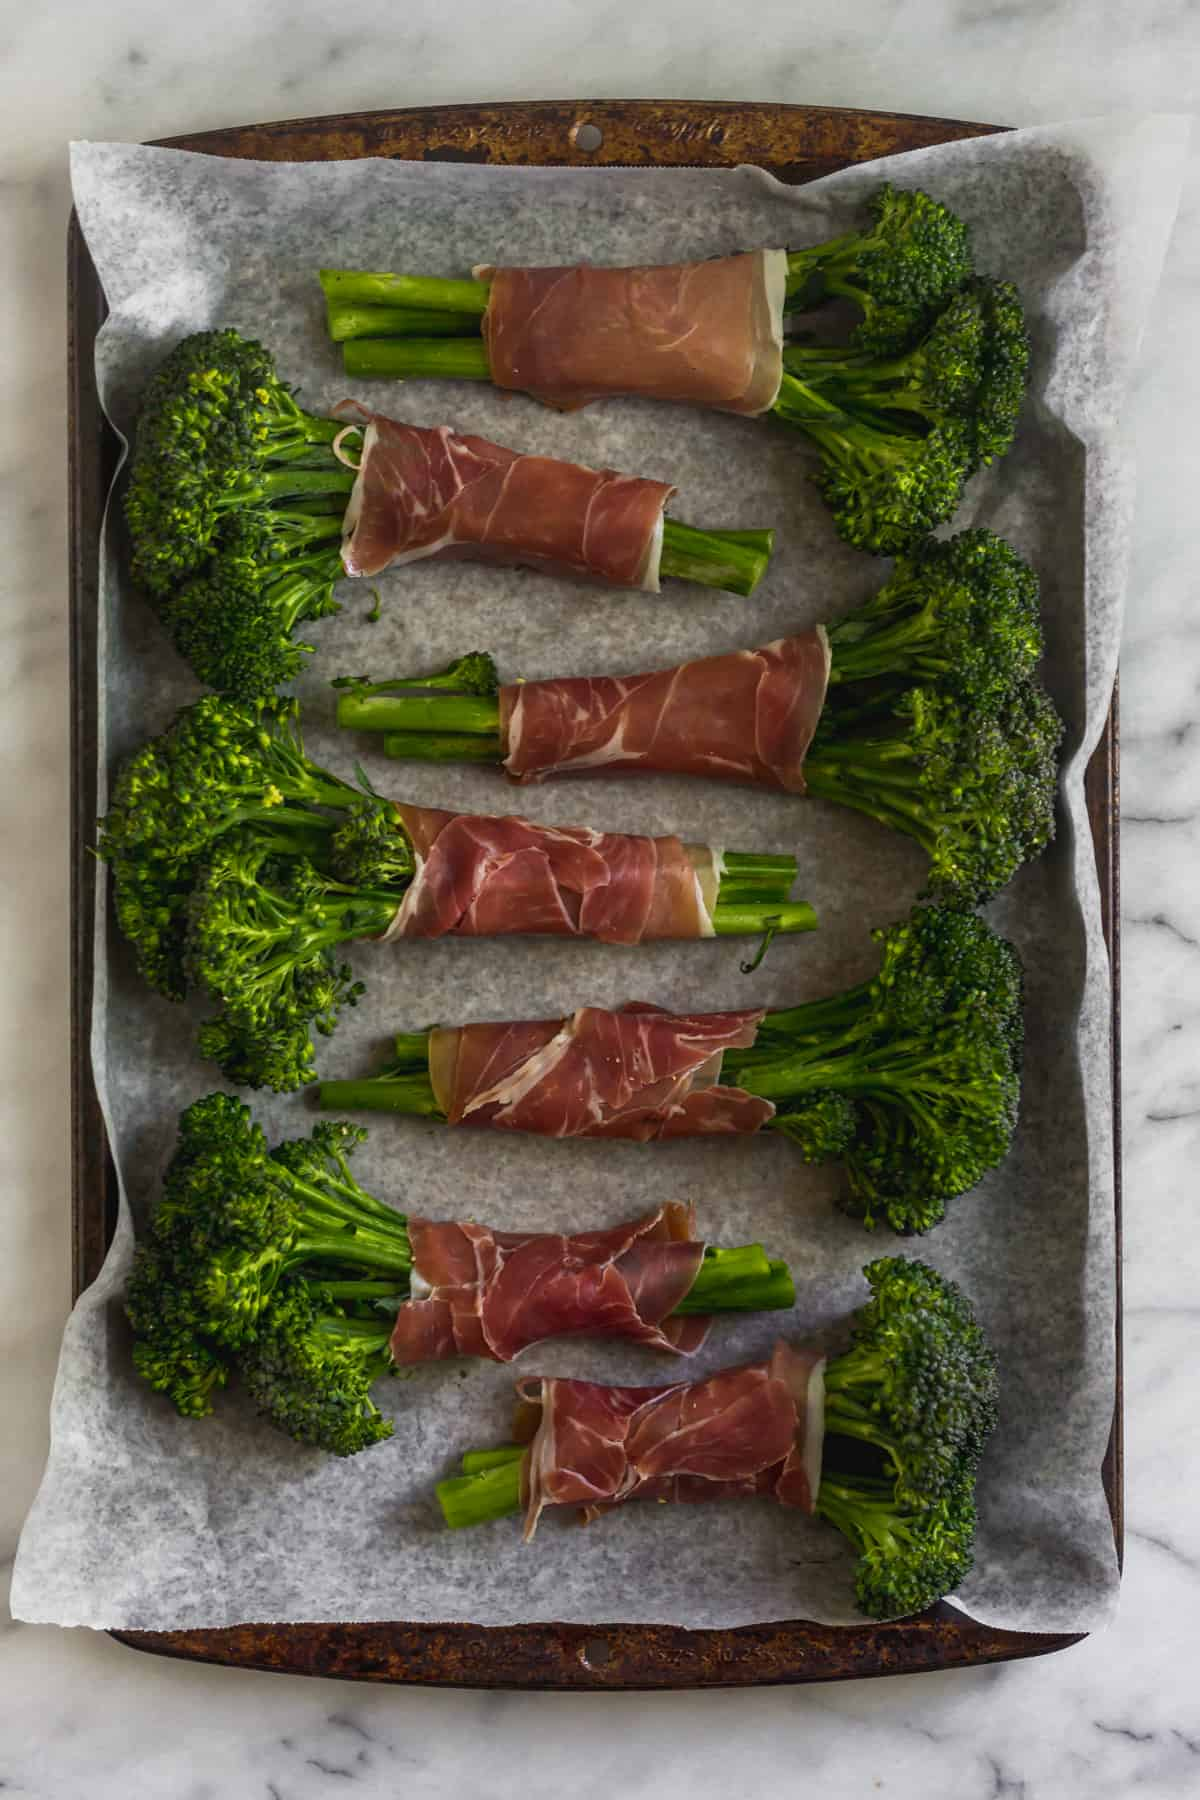 Pan of broccolini wrapped in prosciutto before it will be baked in the oven